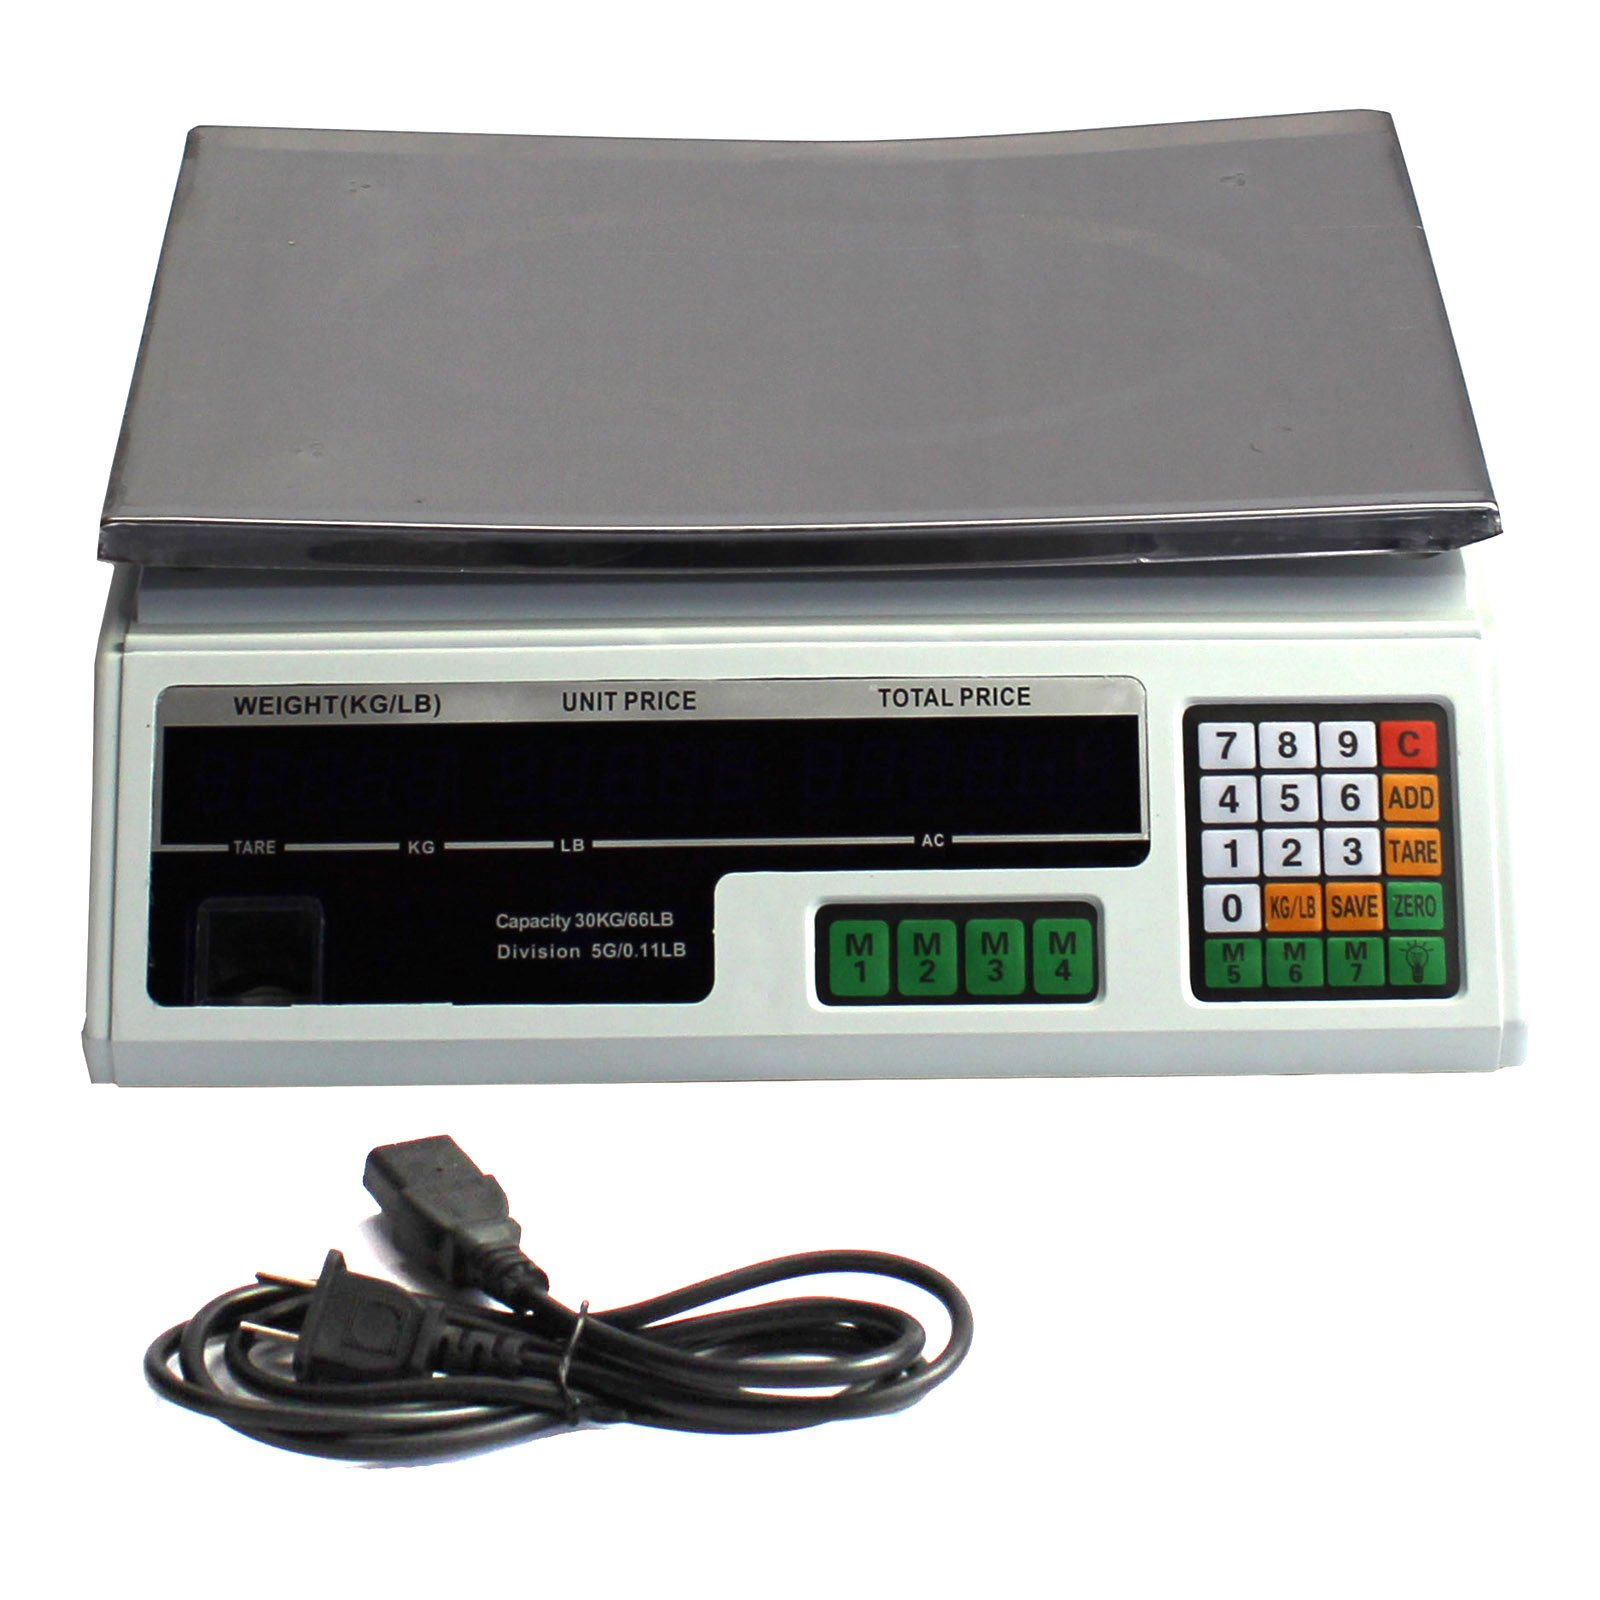 Digital Deli Weight Scale Price Computing Food Produce 60LB ACS-03